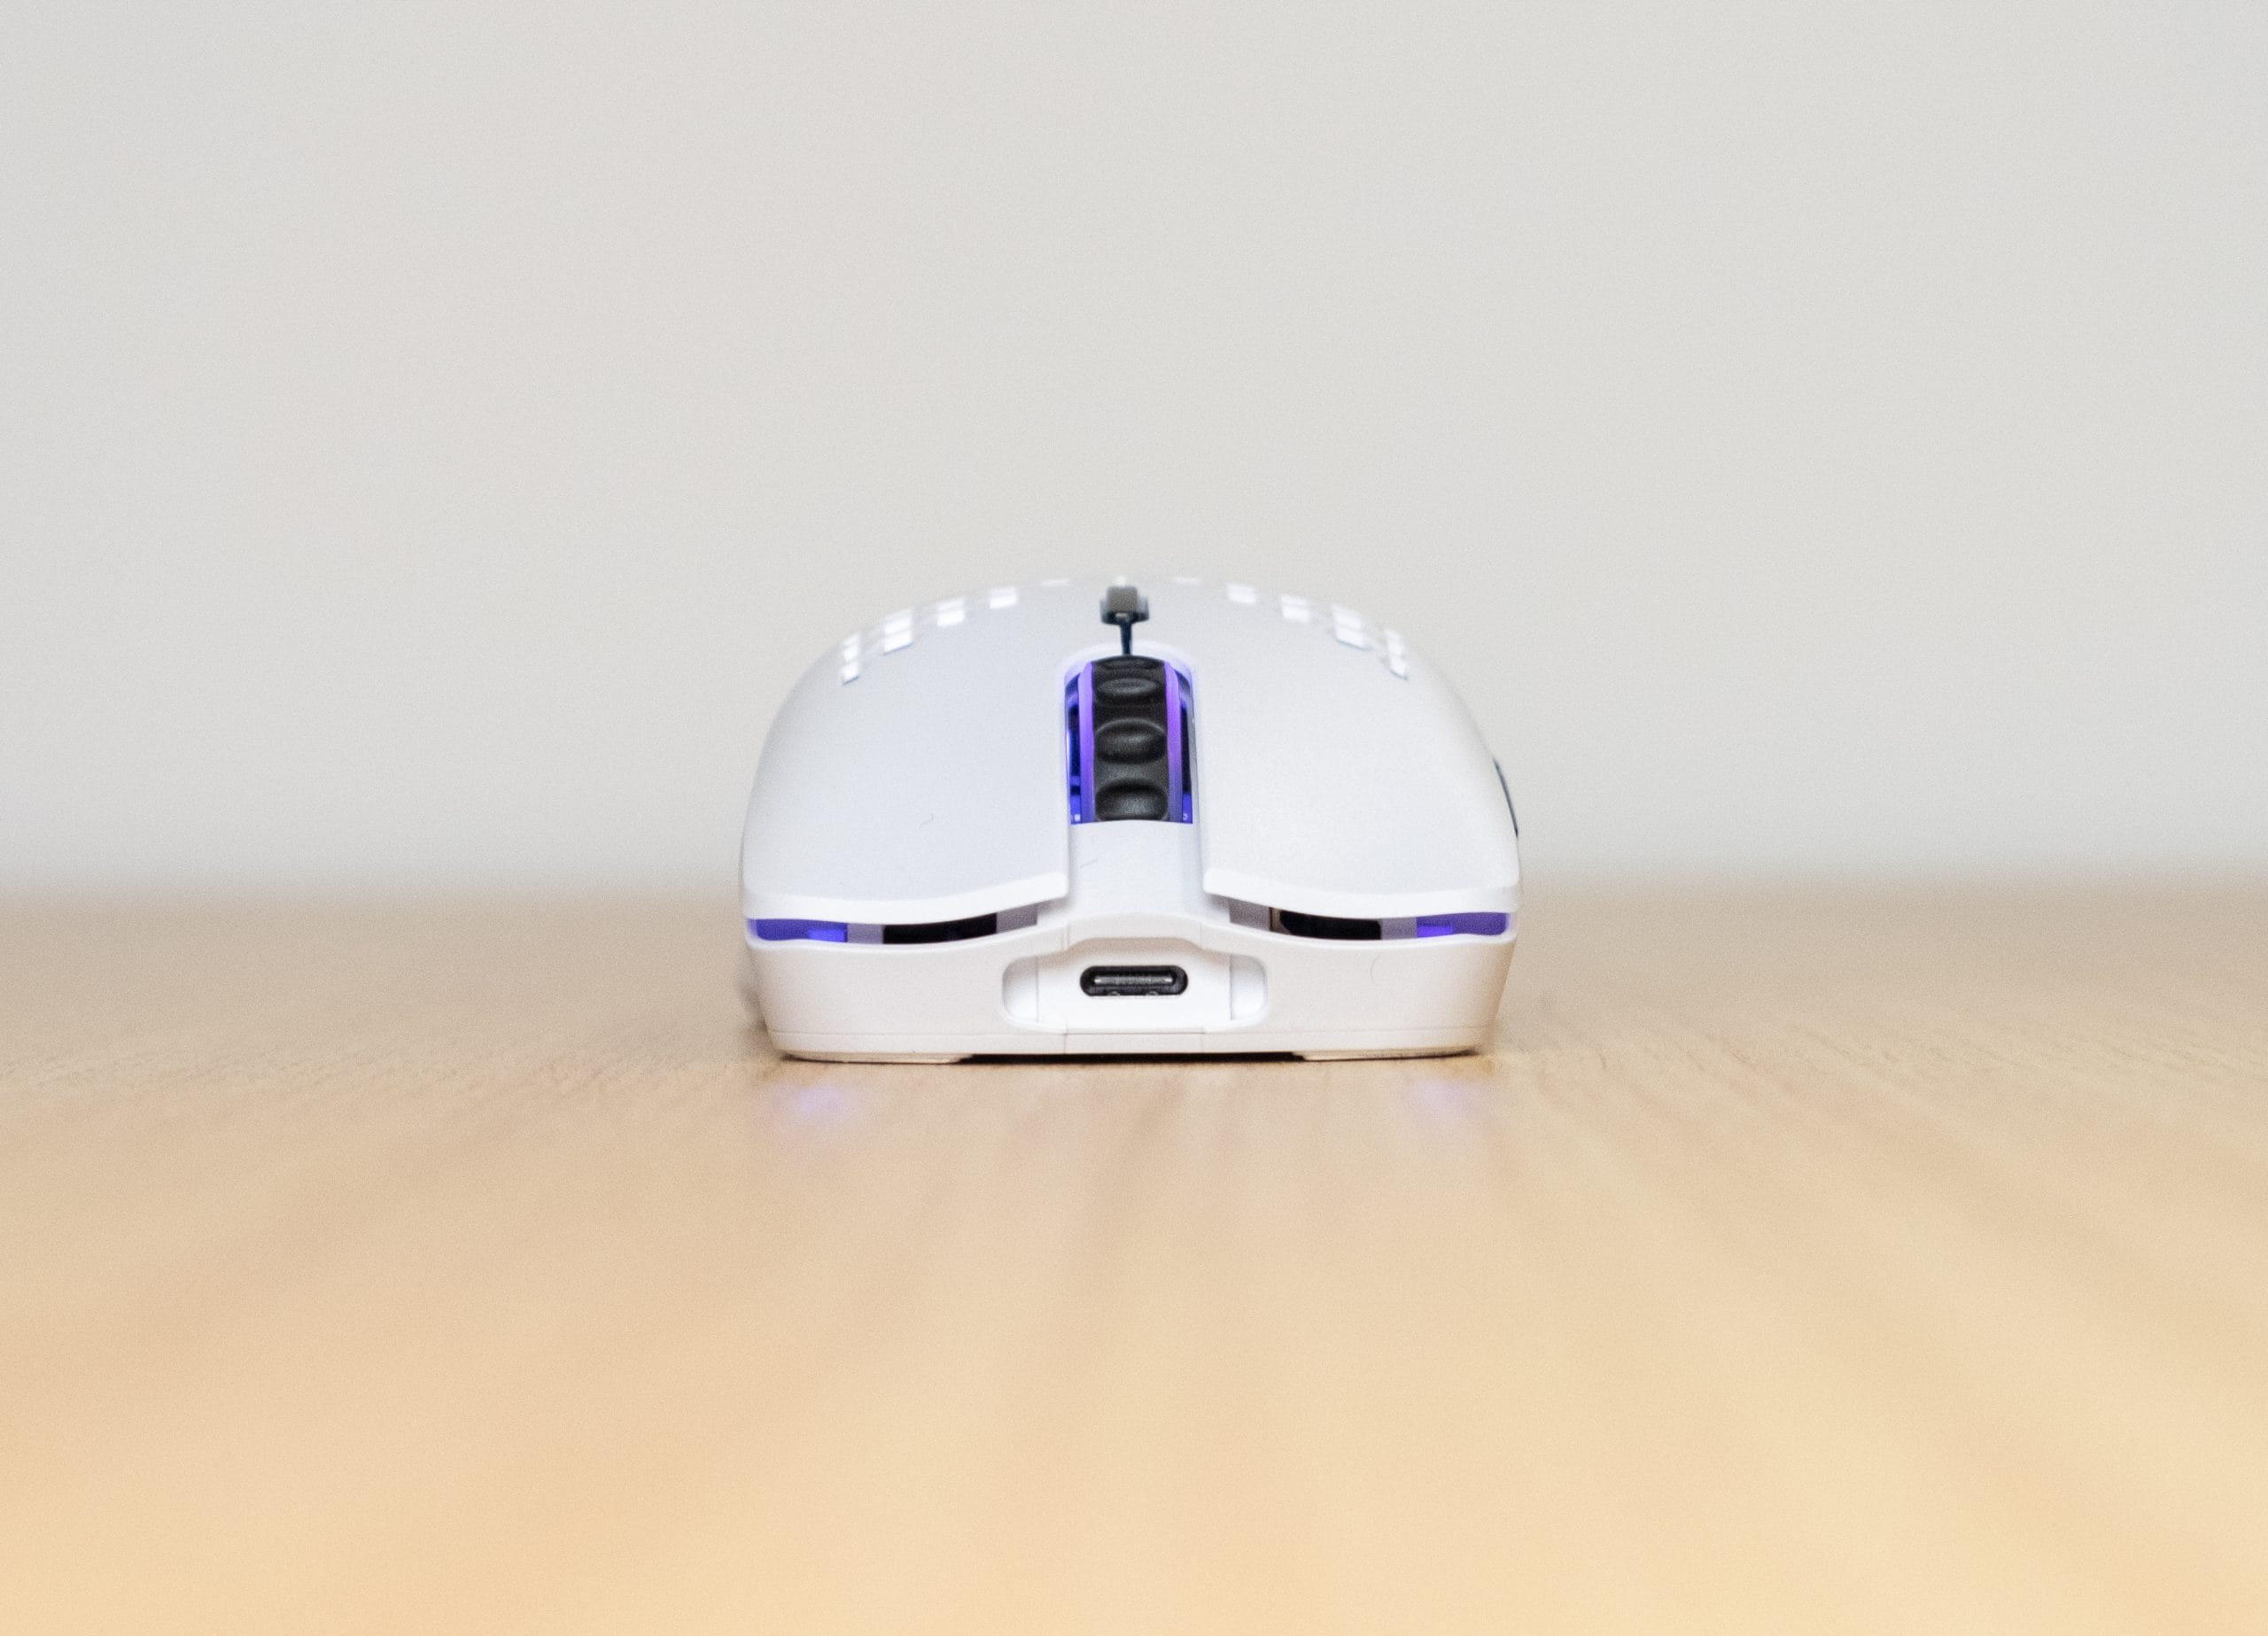 Glorious Model O Wireless - Front